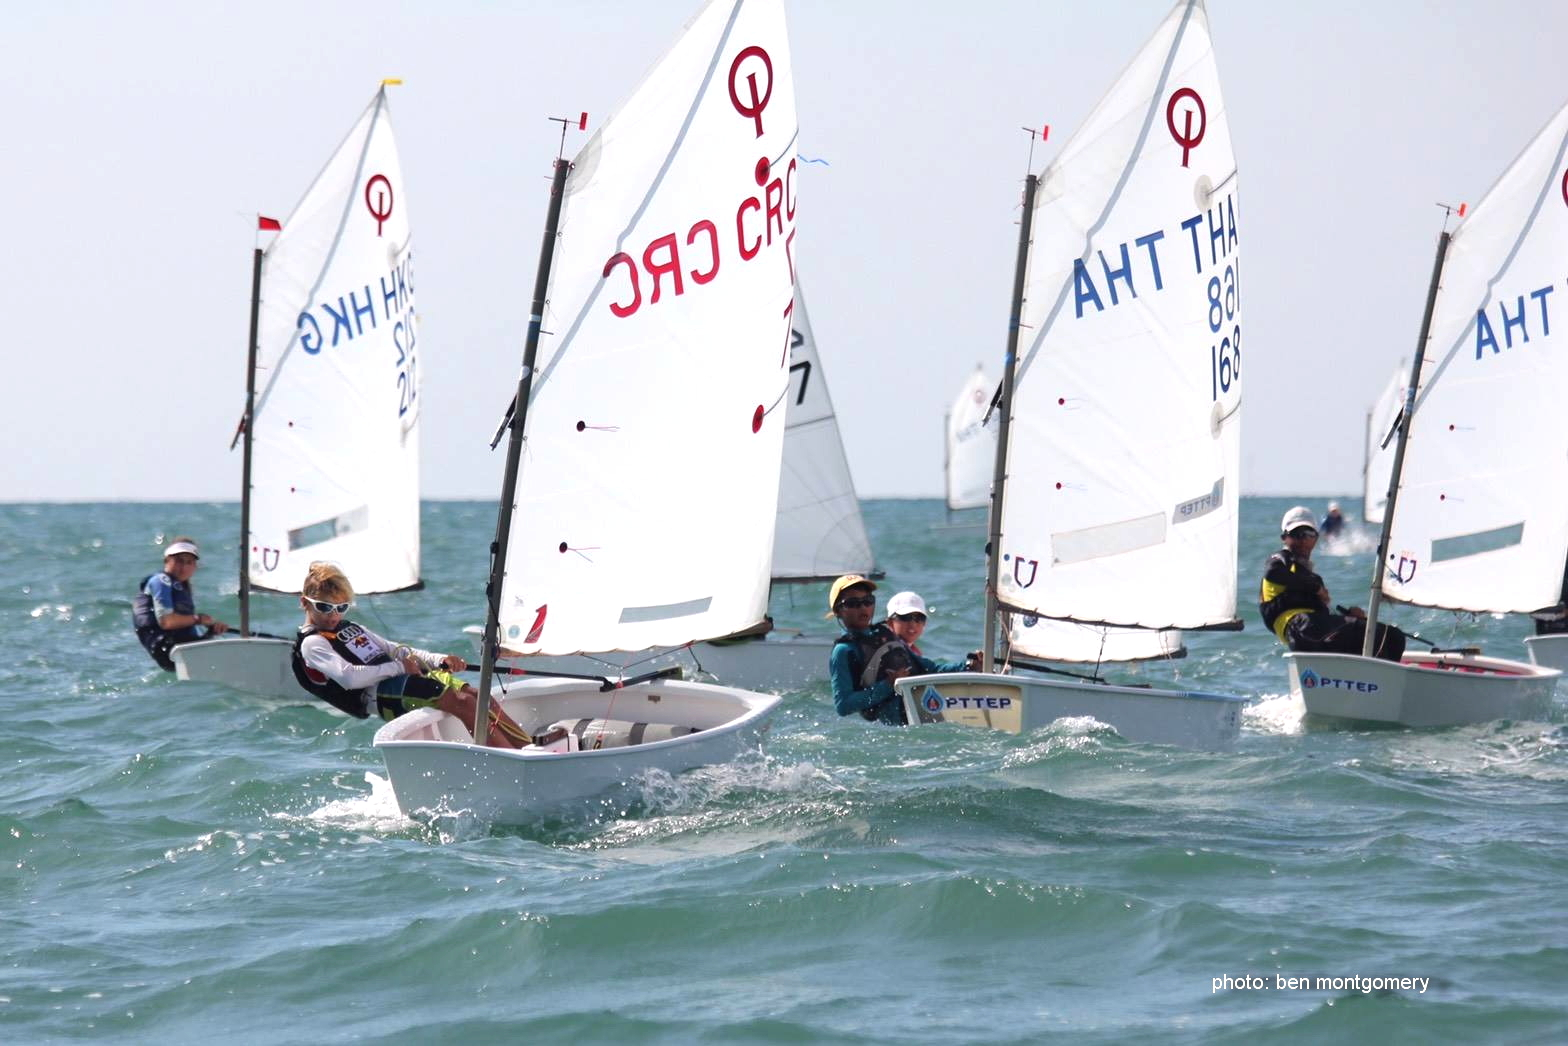 Young sailors from nine countries took part in the Songkran International Regatta held from April 13-16 at Royal Varuna Yacht Club in Pattaya.